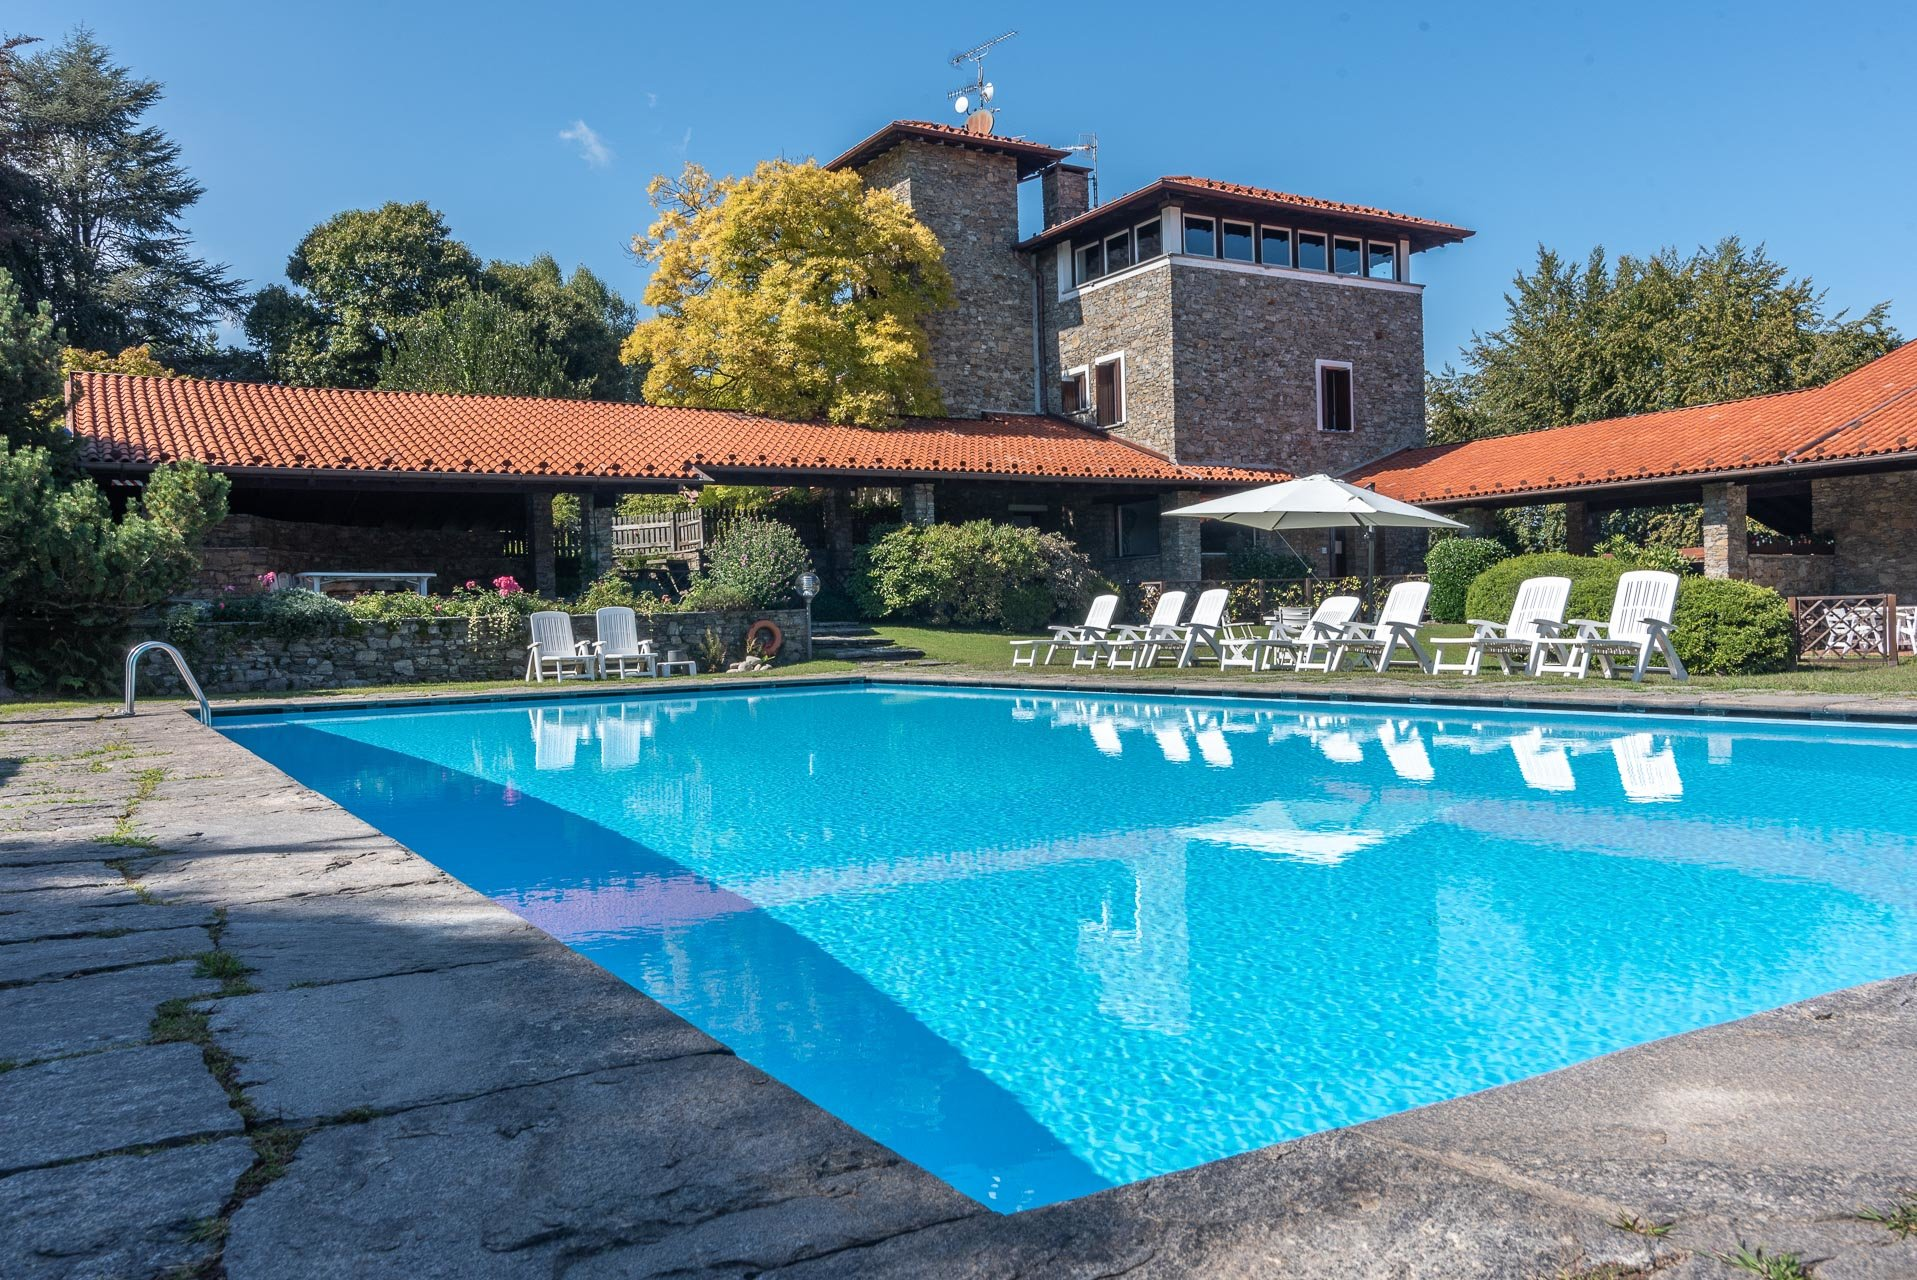 Villa with swimming pool for sale in Gignese - shared swimming pool